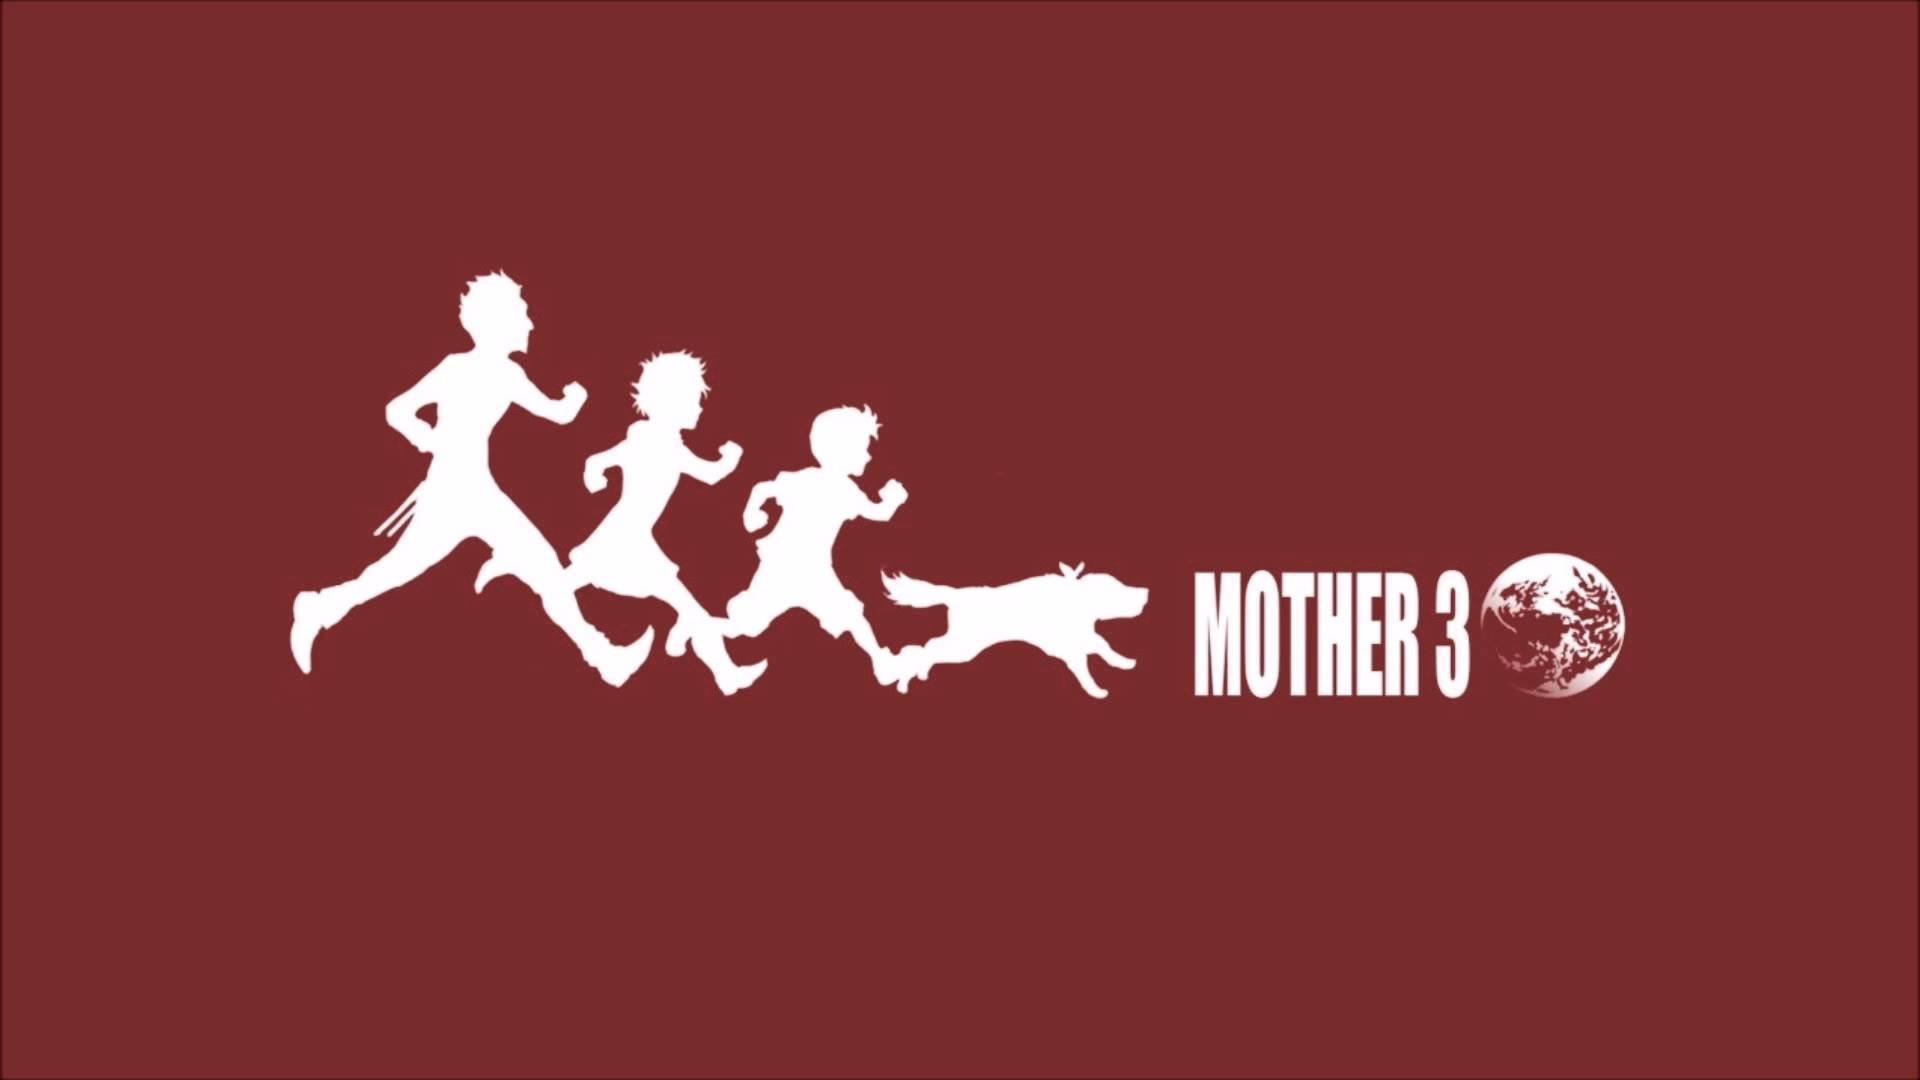 Res: 1920x1080, Mother 3 HD Wallpapers 19 - 1920 X 1080